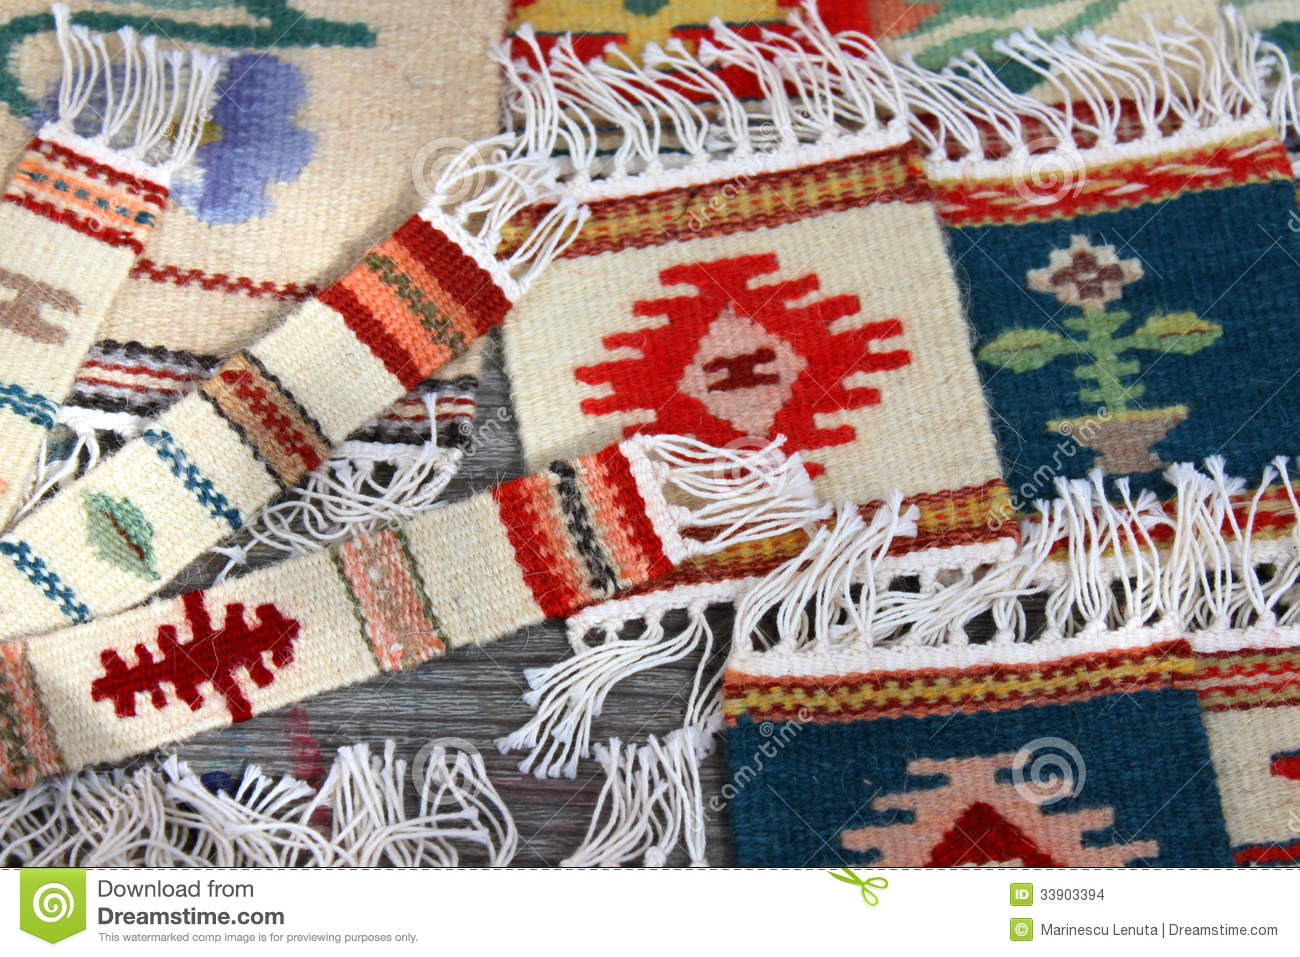 bookmarks decorative handmade romanian rugs - Decorative Rugs